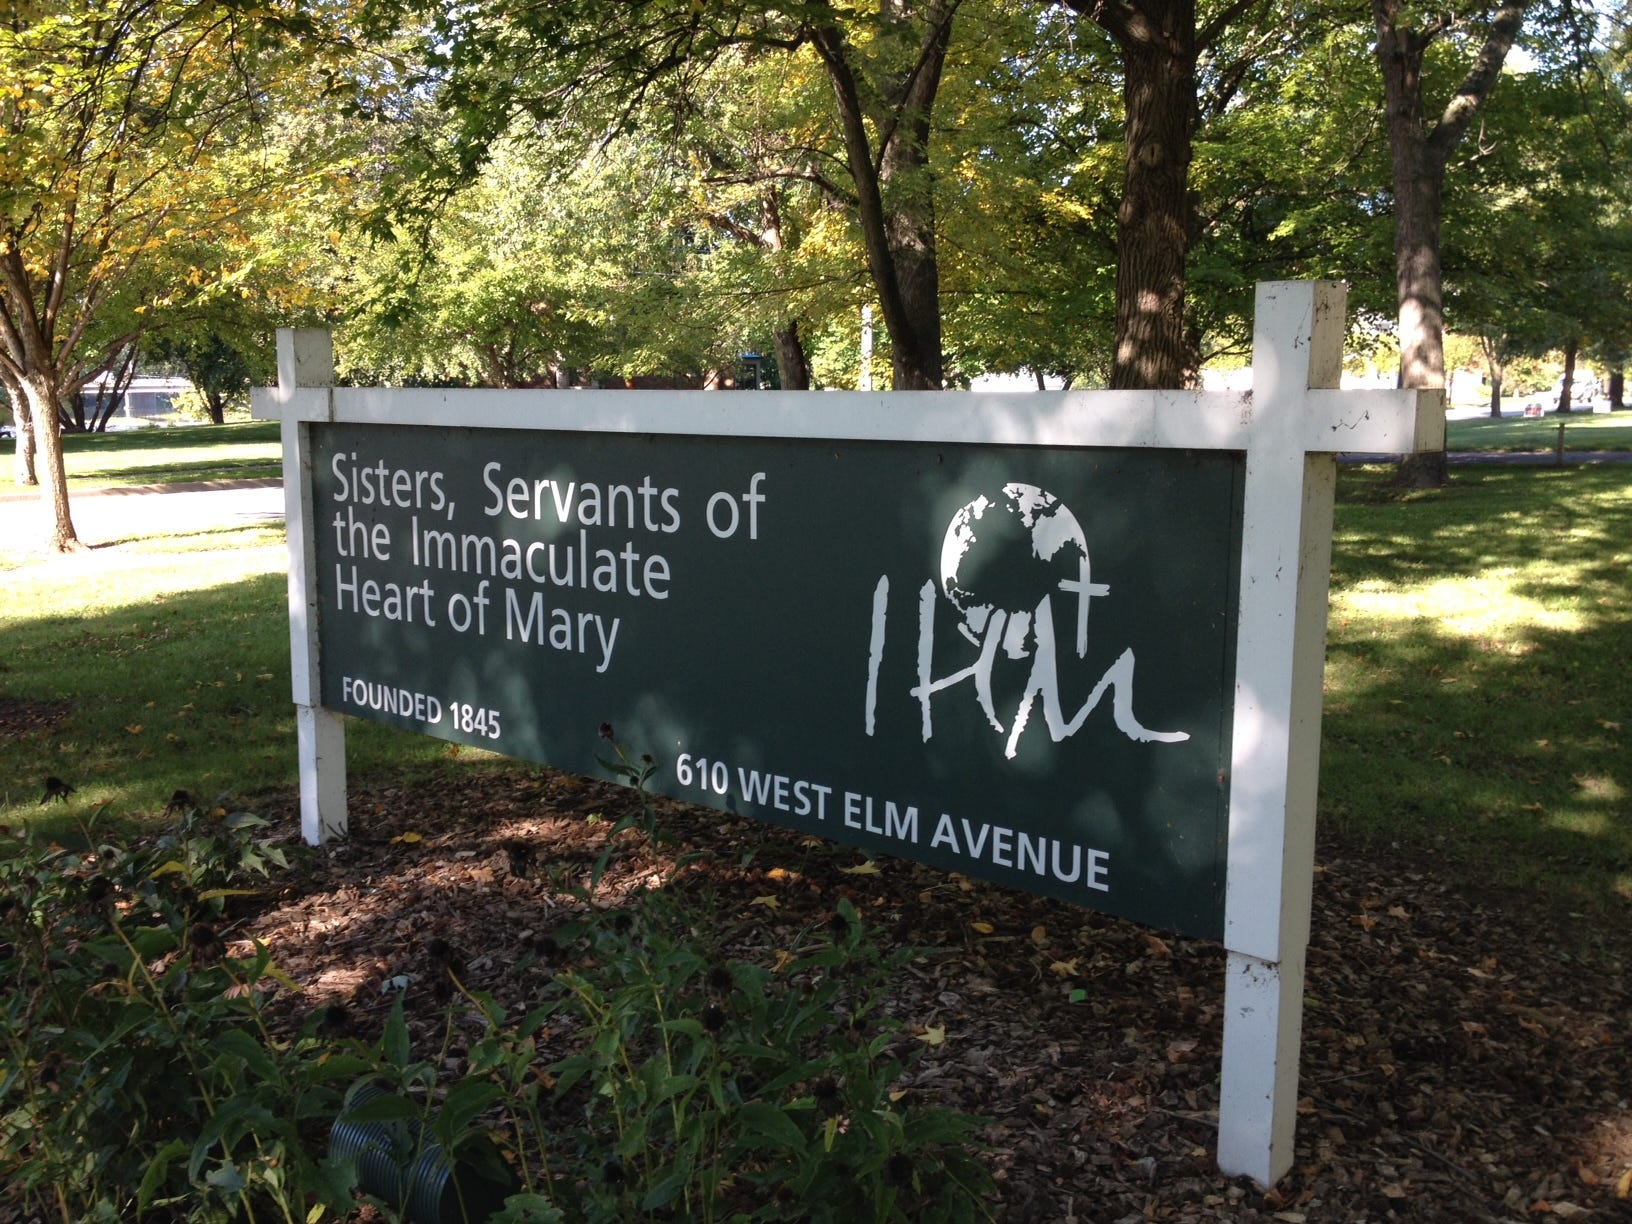 A sign outside the Monroe headquarters and Motherhouse for the Sisters, Servants of the Immaculate Heart of Mary congregation. The IHM sisters were once the predominant teaching order in southeastern Michigan. The sisters founded Marian High School in Bloomfield Township in 1959.